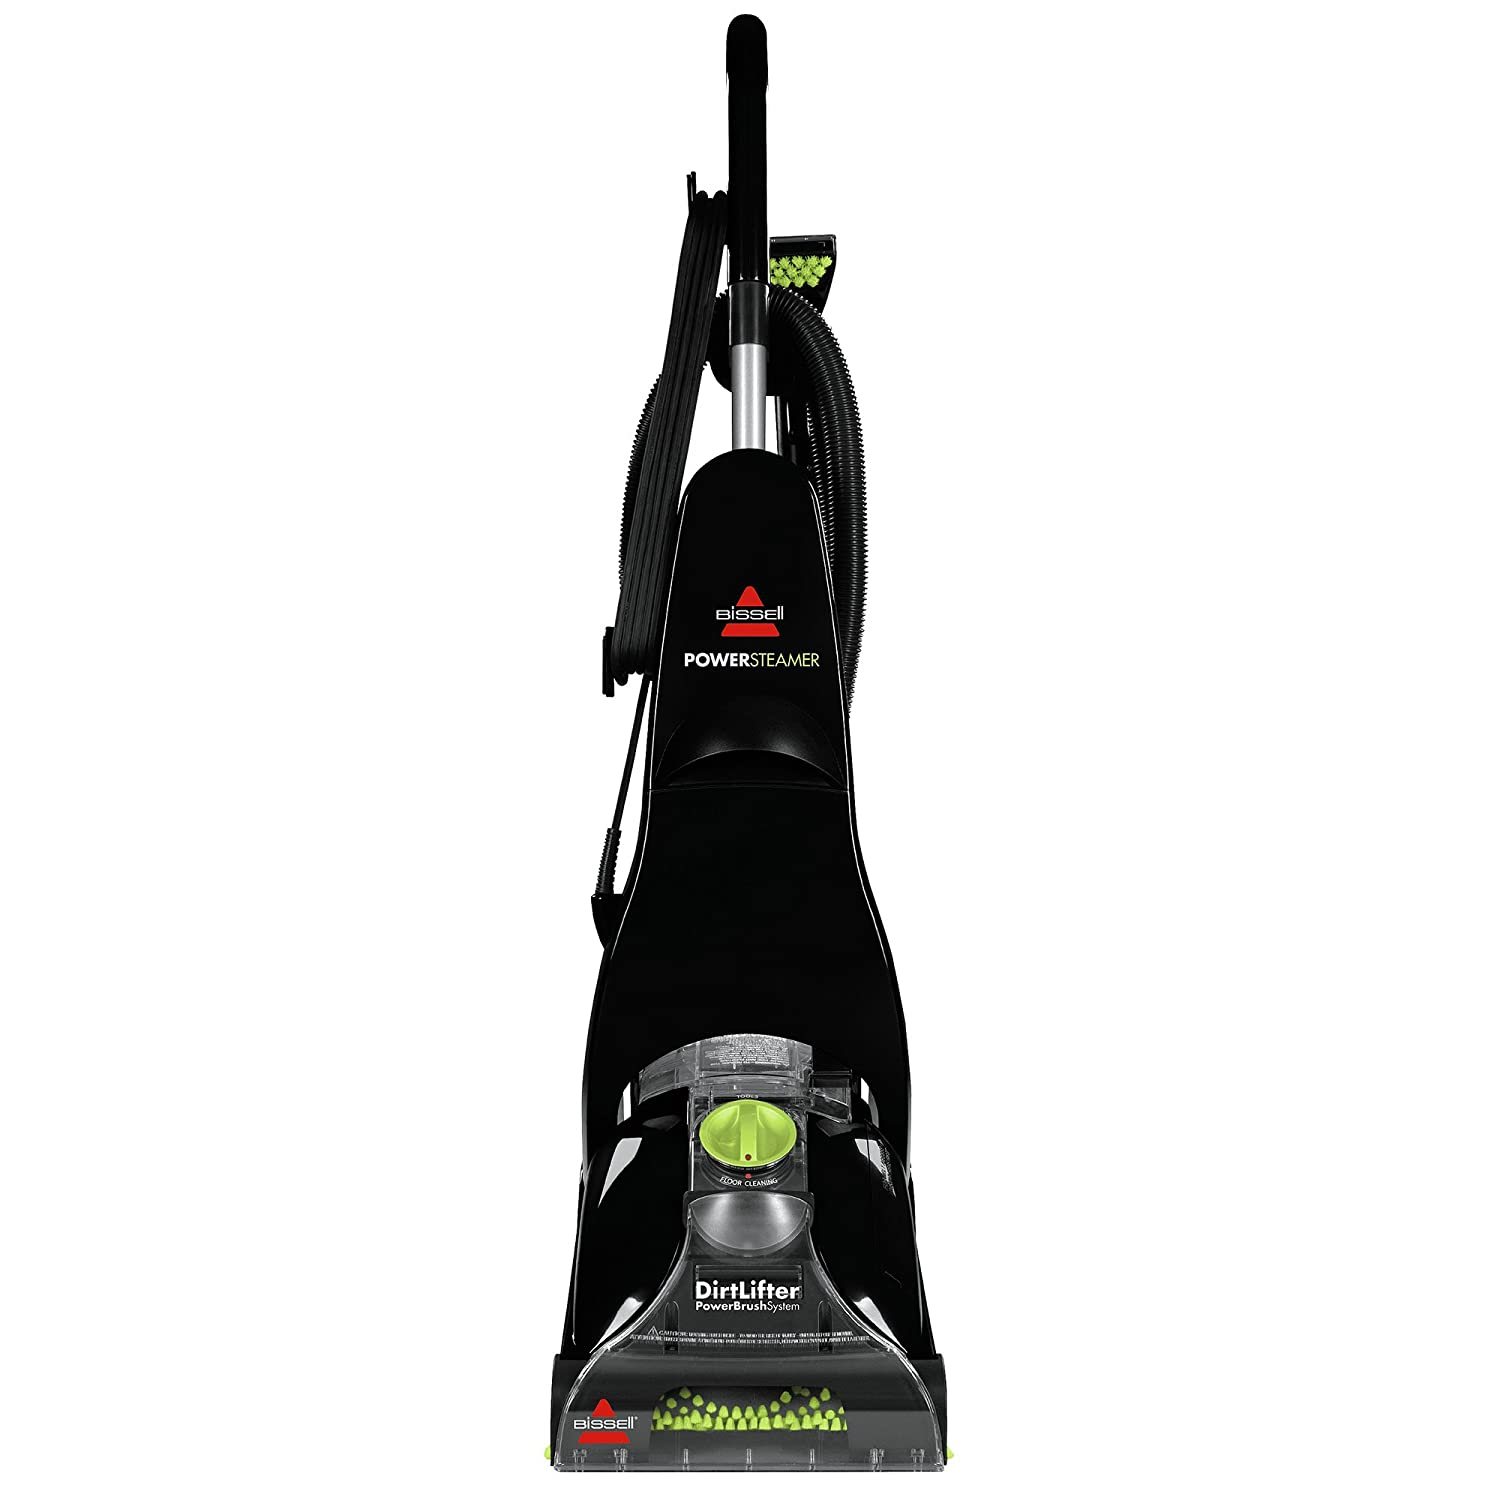 Amazon.com - Bissell Powersteamer Powerbrush Carpet Cleaner and Carpet  Shampooer, 16237 -